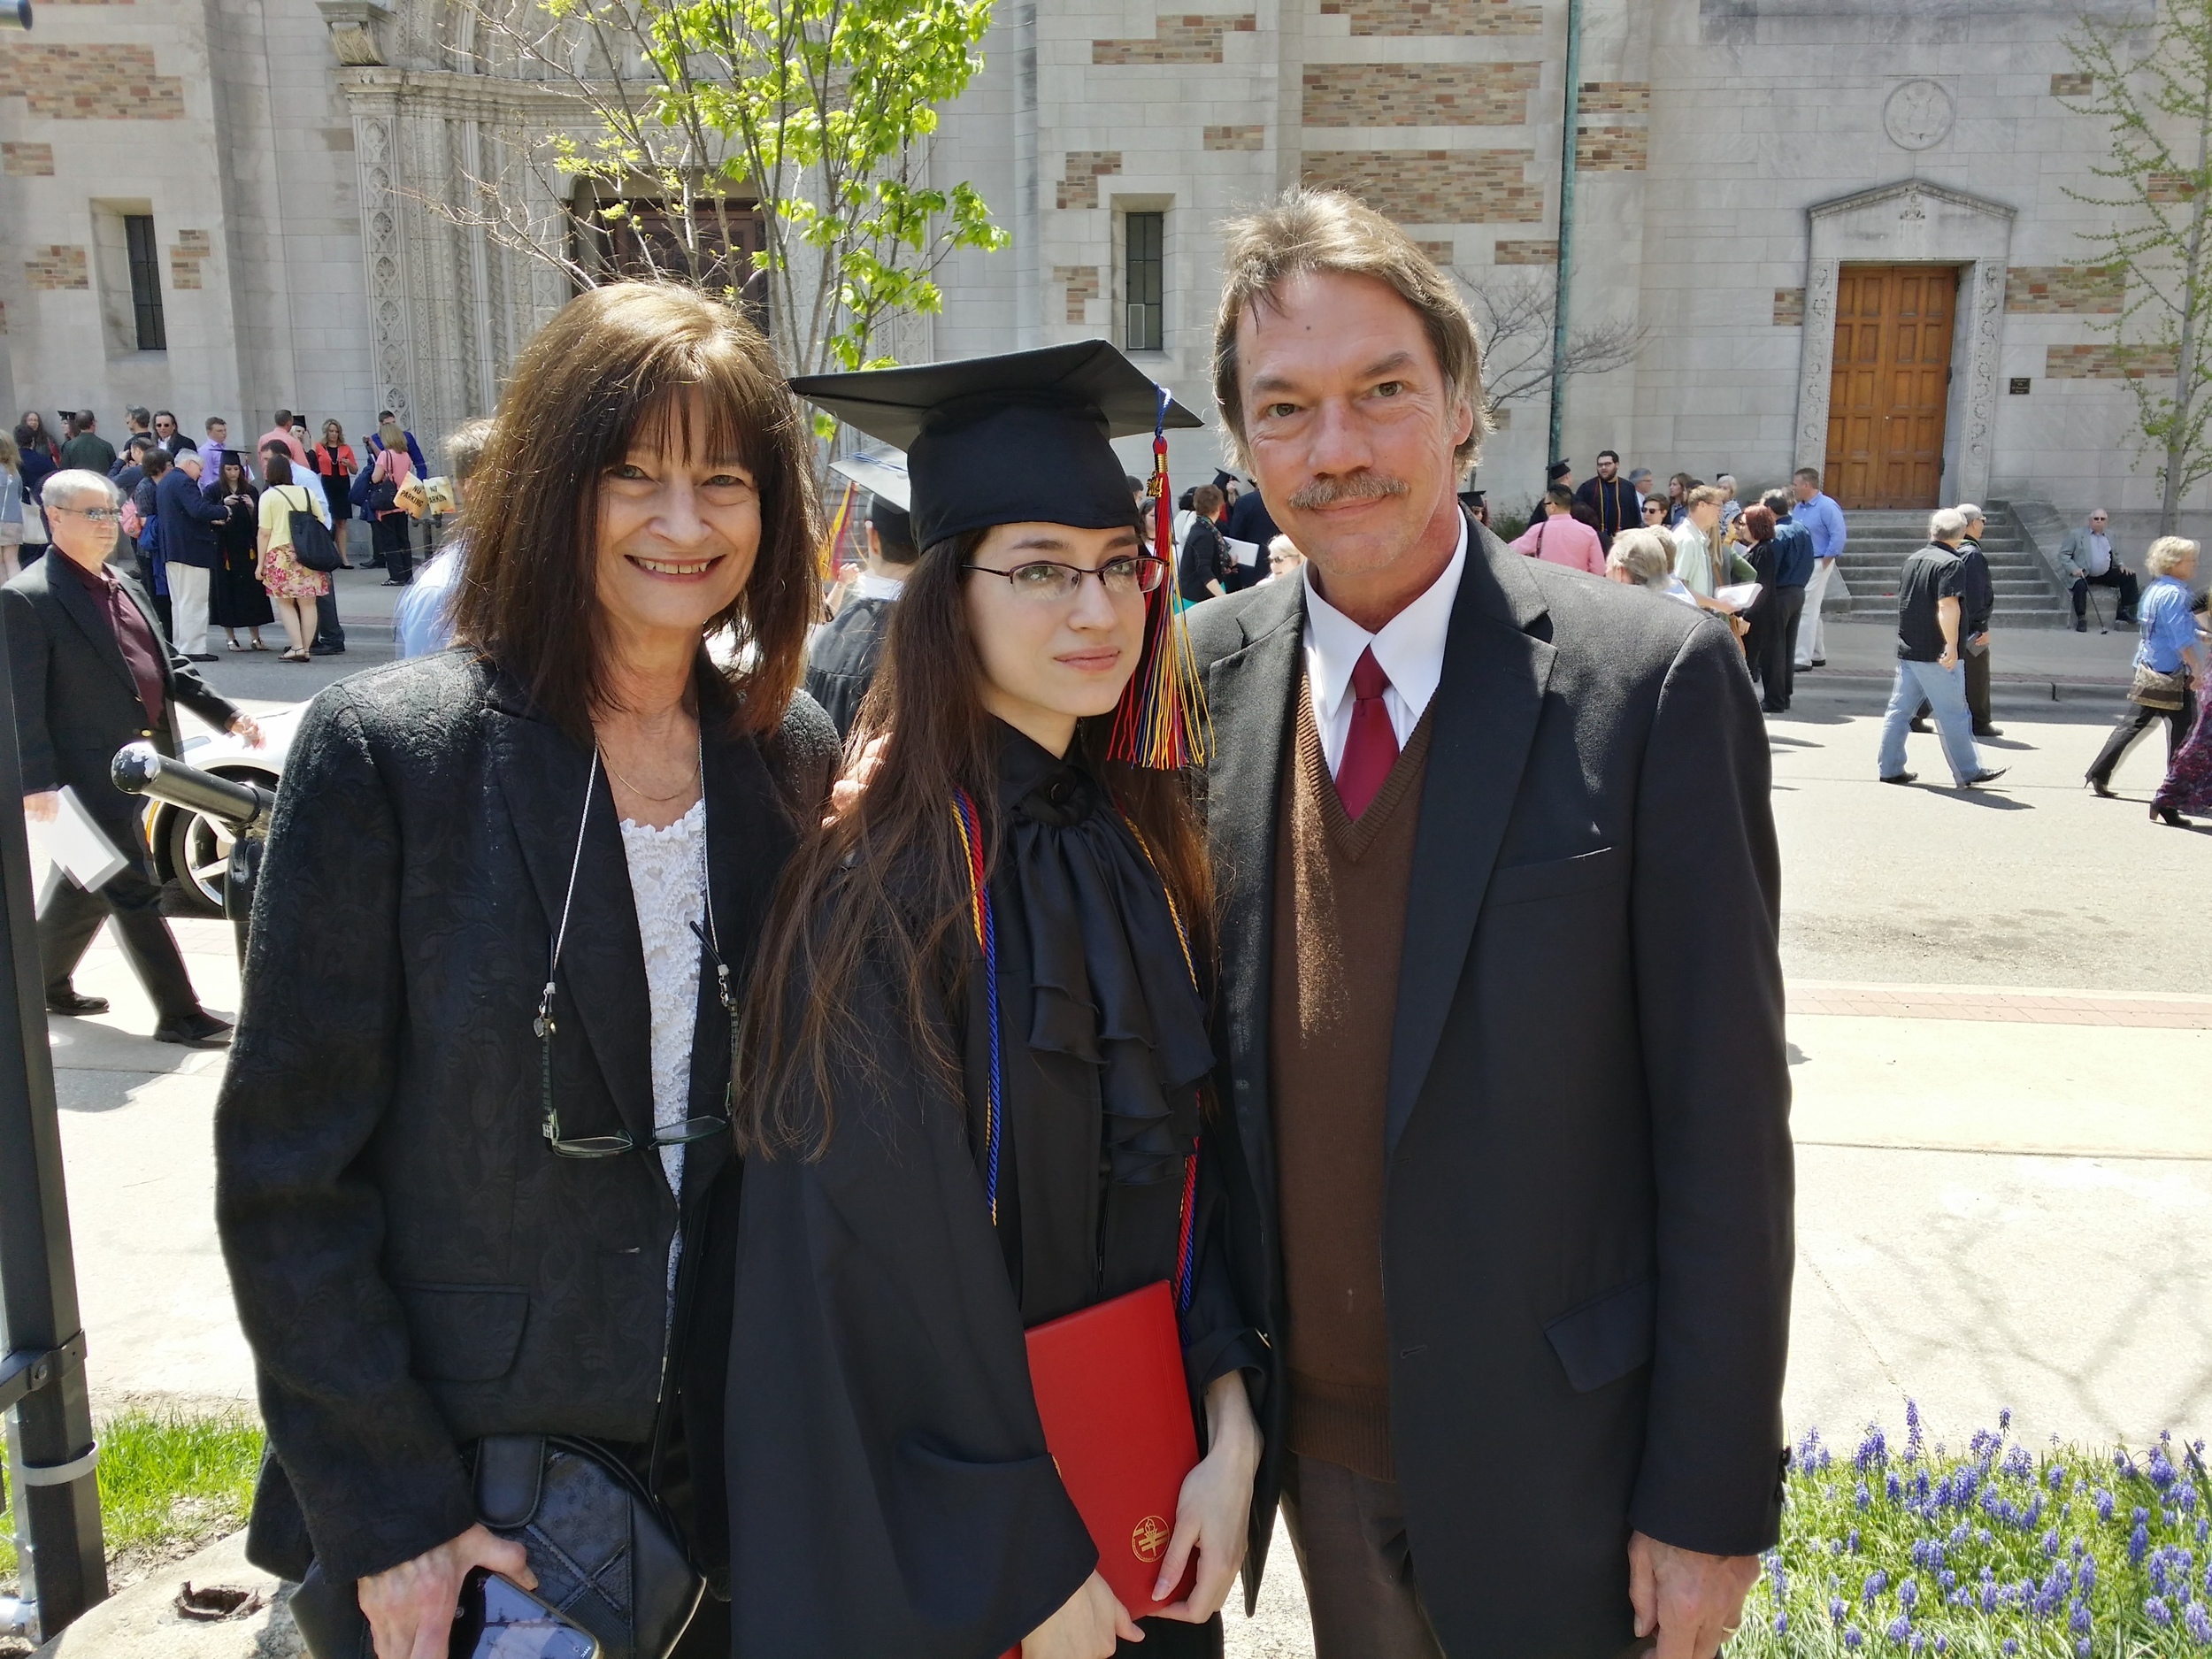 With my awesomely supportive parents